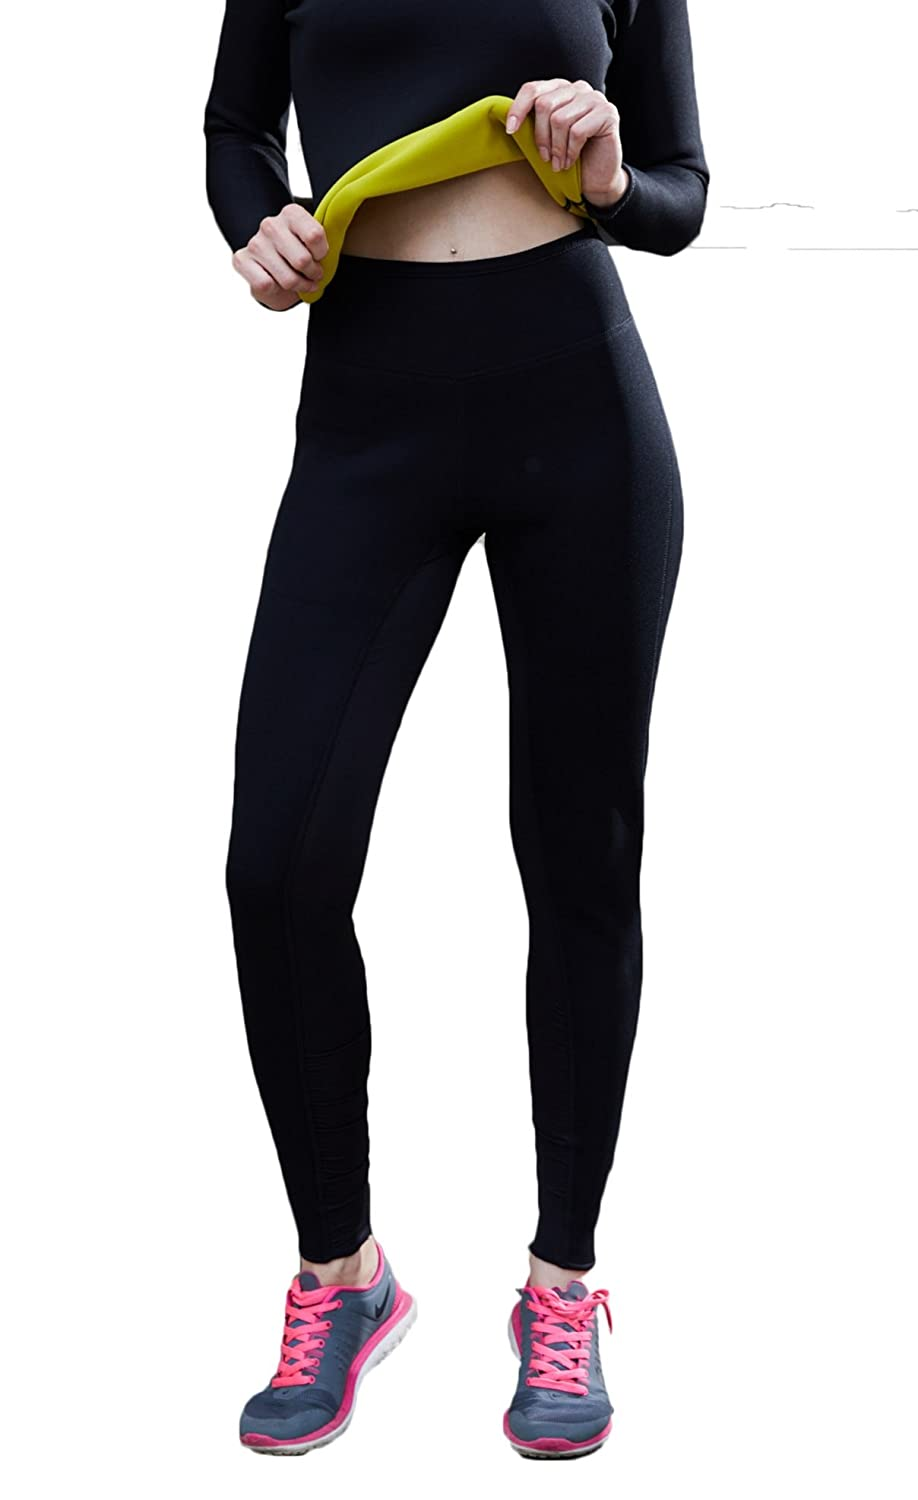 Stworld Hot Body Shapers Breathable Thermal Neoprene Sweat Sauna Long Slimming Pants for Weight Loss